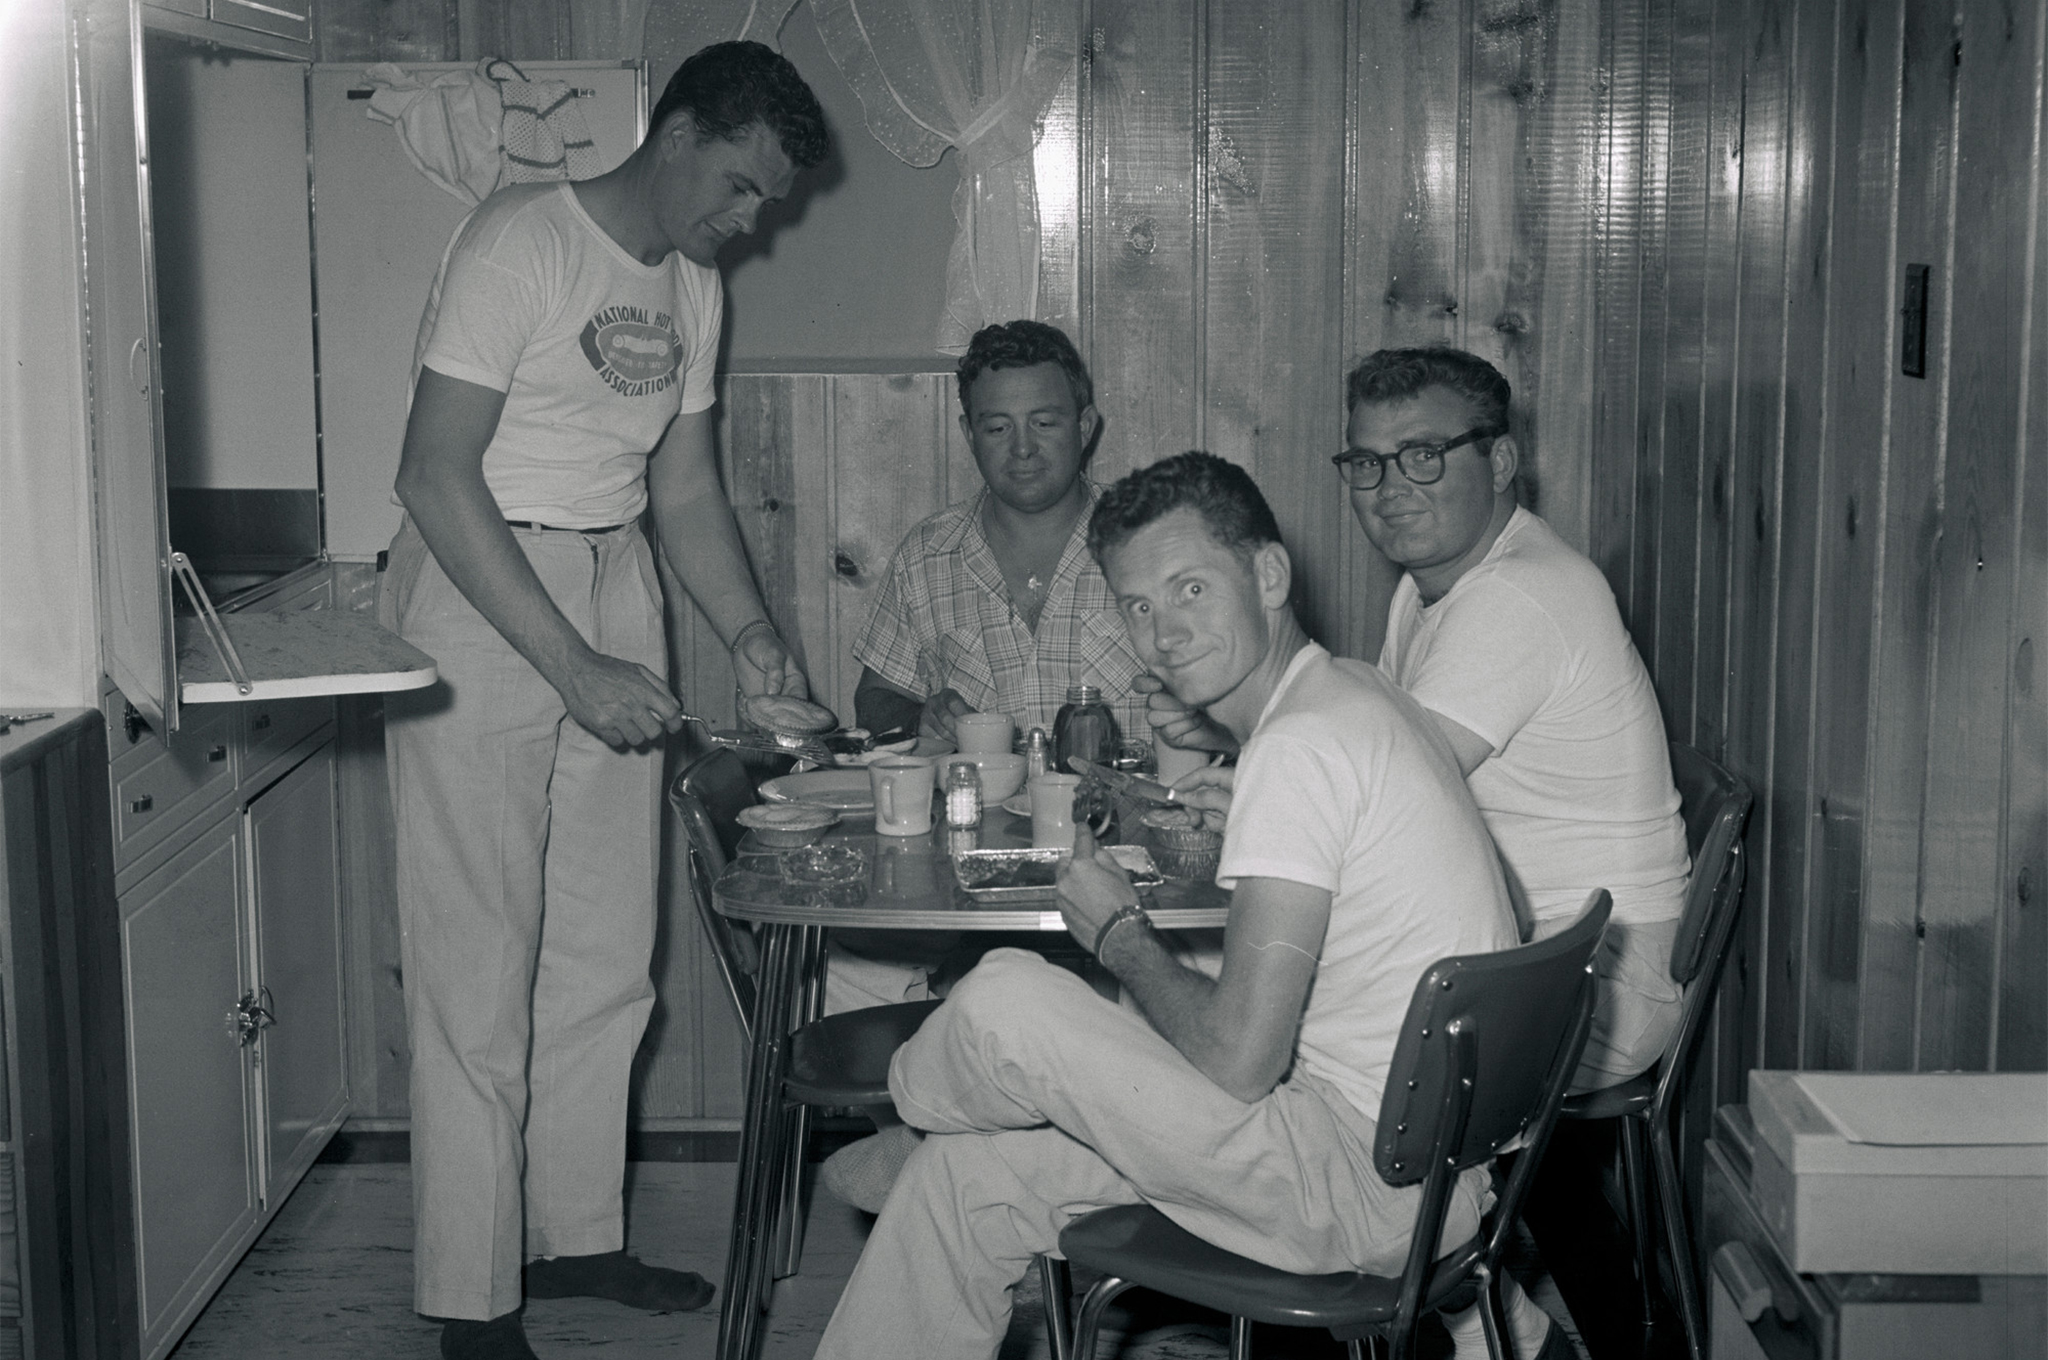 "Eric Rickman often remarked that because he worked for HOT ROD, which made money, instead of NHRA, which did not, ""I could have steak every night, while the other guys ate hamburger."" Tonight, though, it looks like TV dinners all around for (left to right) Bud Coons, Rick, Chic Cannon, and Bud Evans. Cannon, the sole survivor, is writing a book about his experiences."